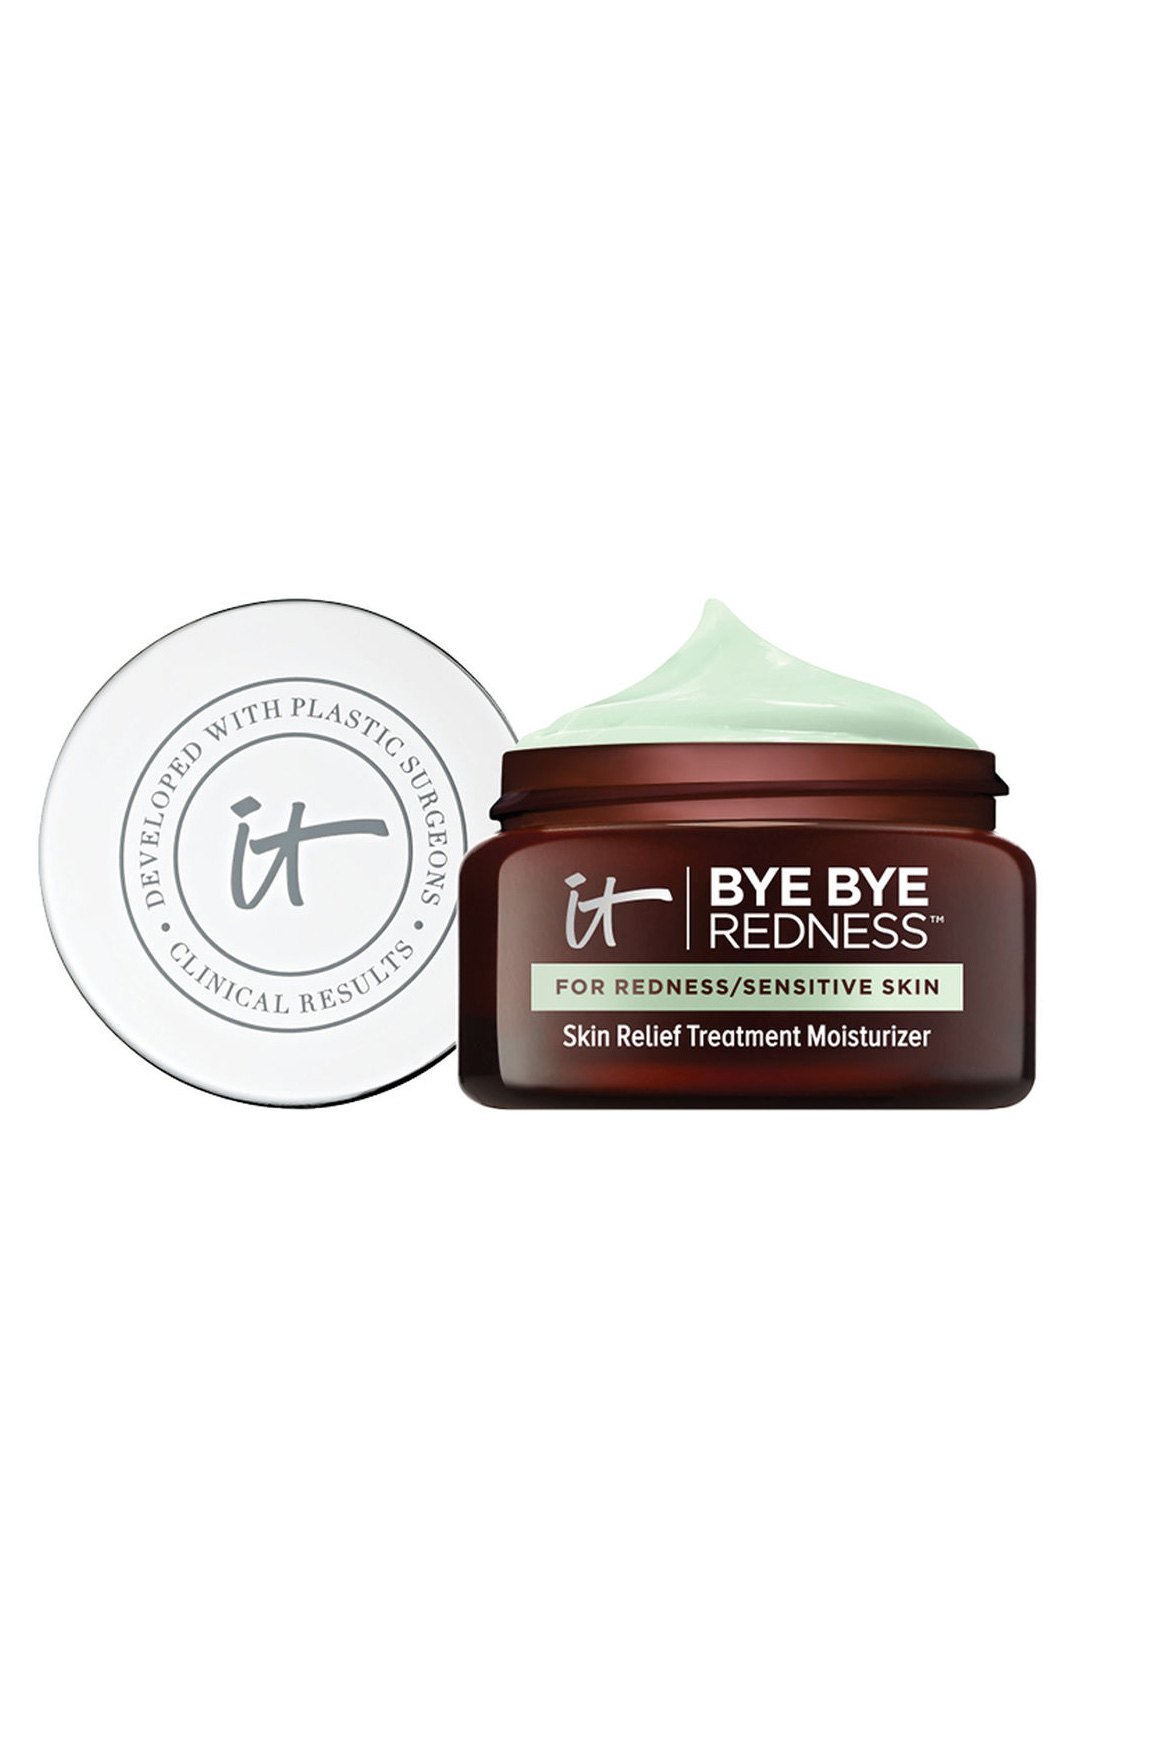 IT Cosmetics Bye Bye Redness Moisturizer